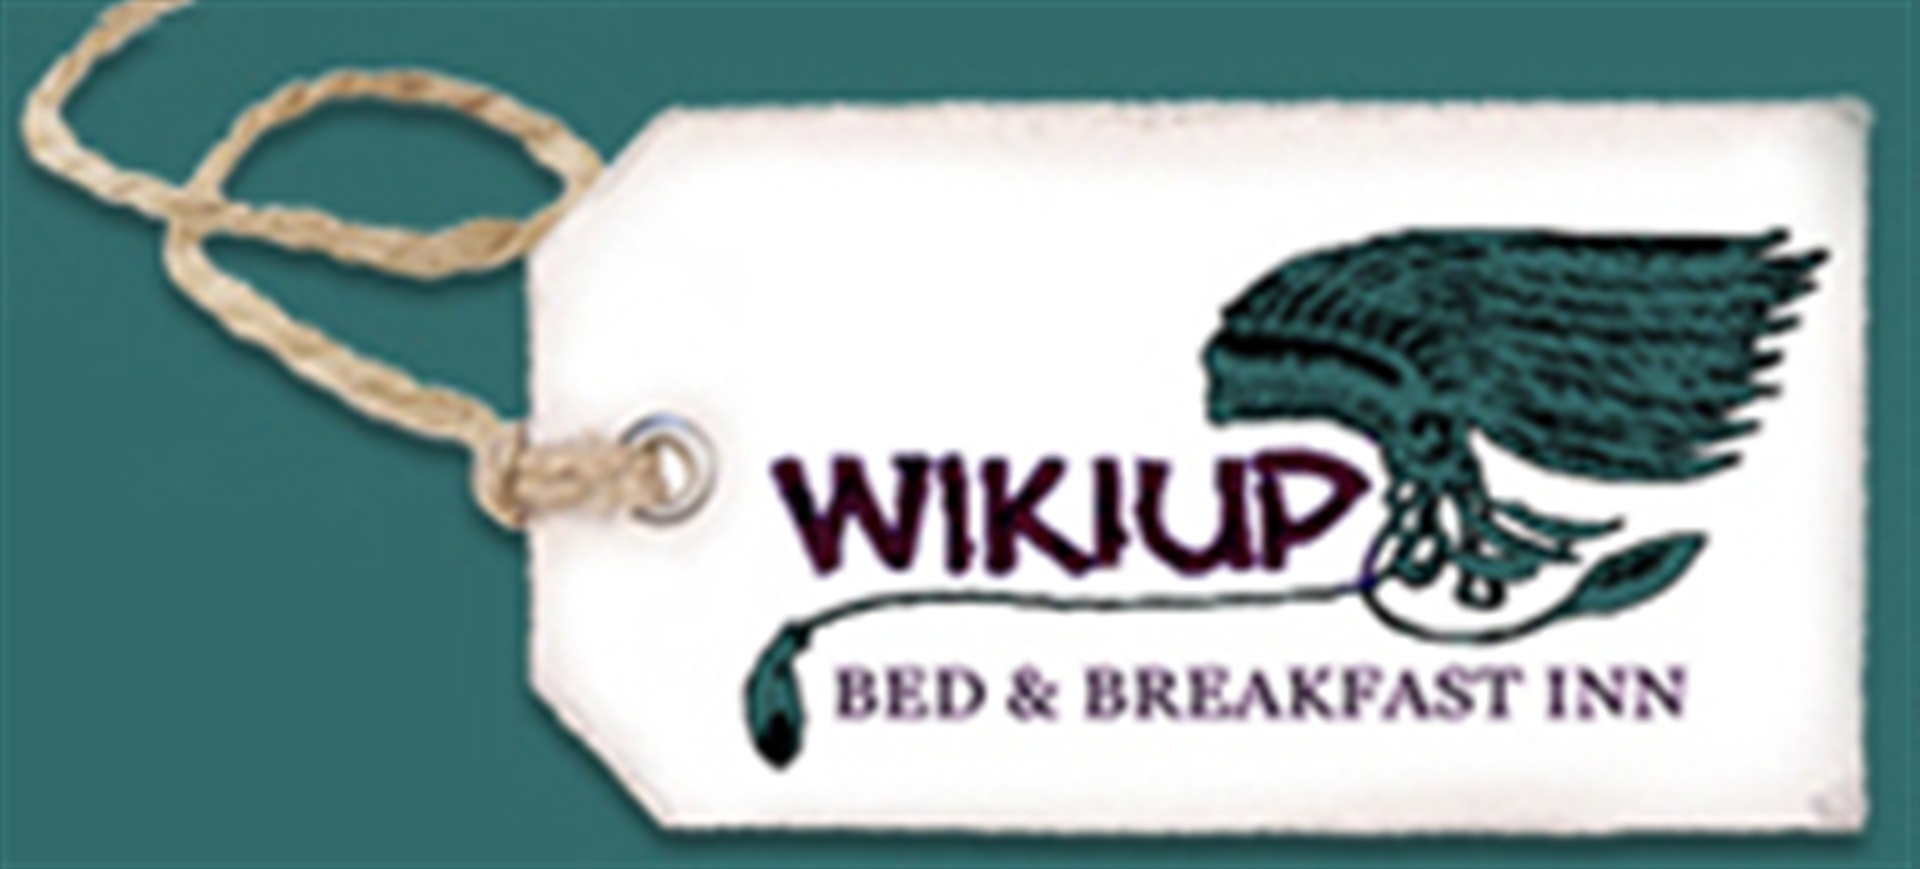 Wikiup Bed and Breakfast